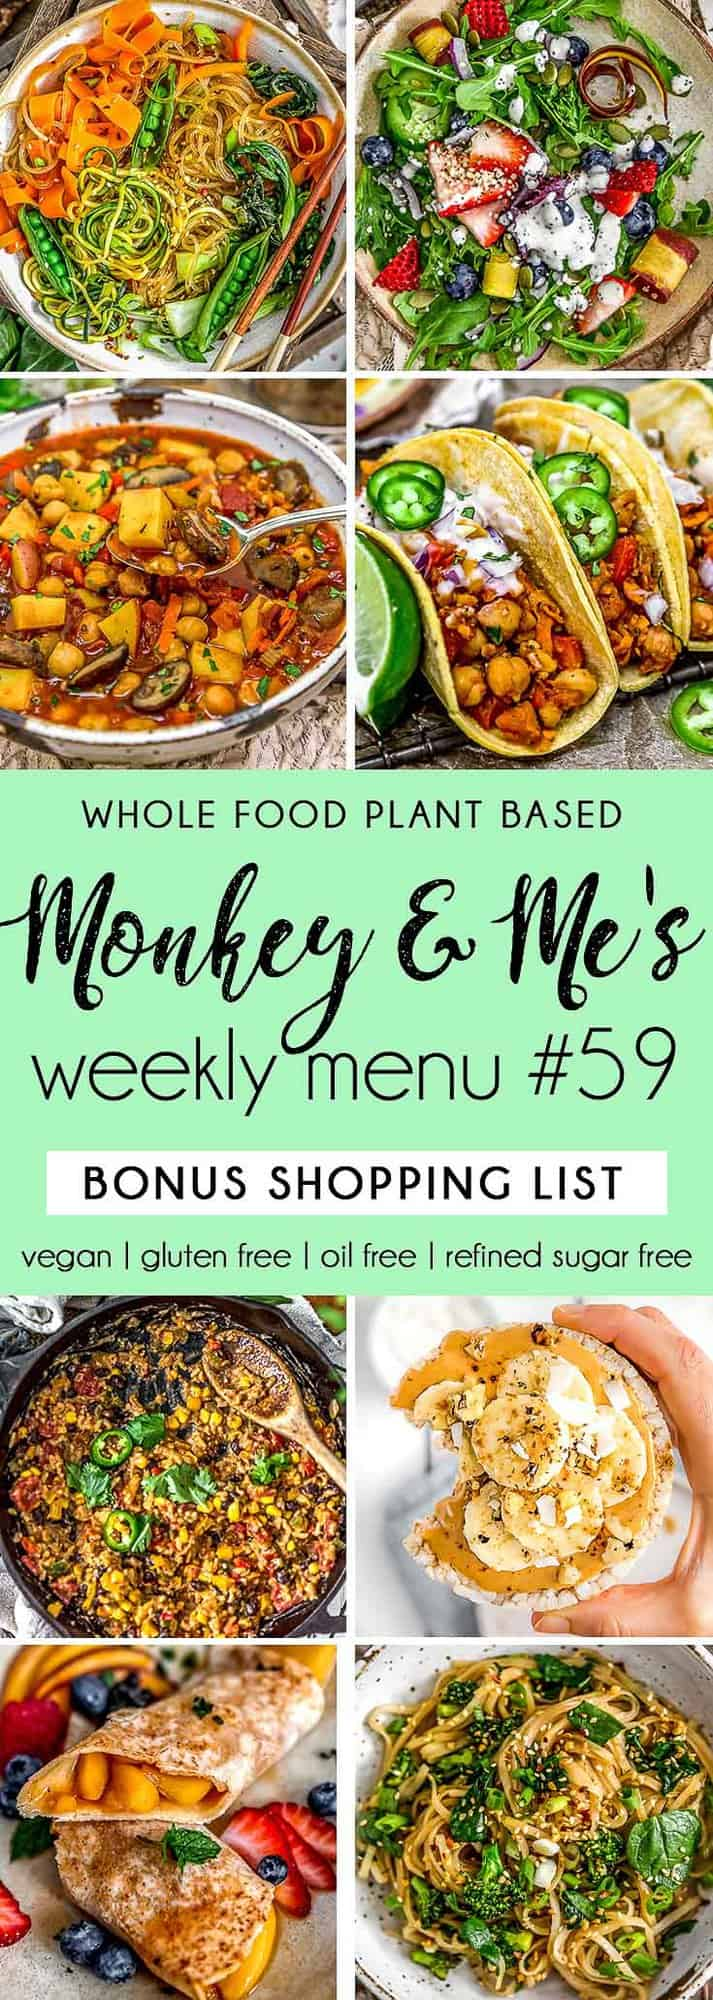 Monkey and Me's Menu 59 featuring 8 recipes